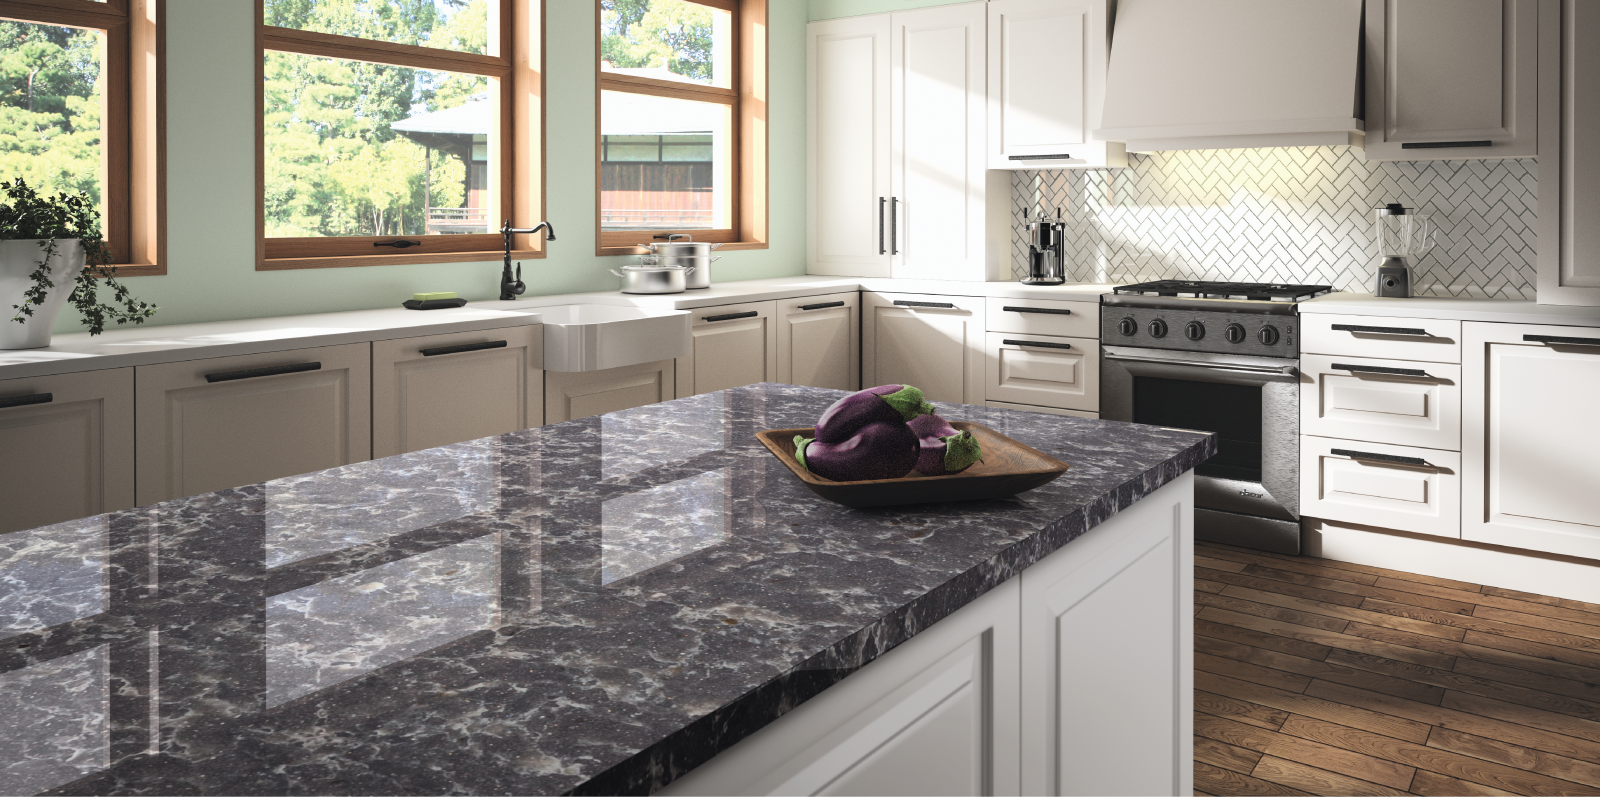 is cabinet price home countertops kitchen half design lauderdale fort a entity blowout having cabinets